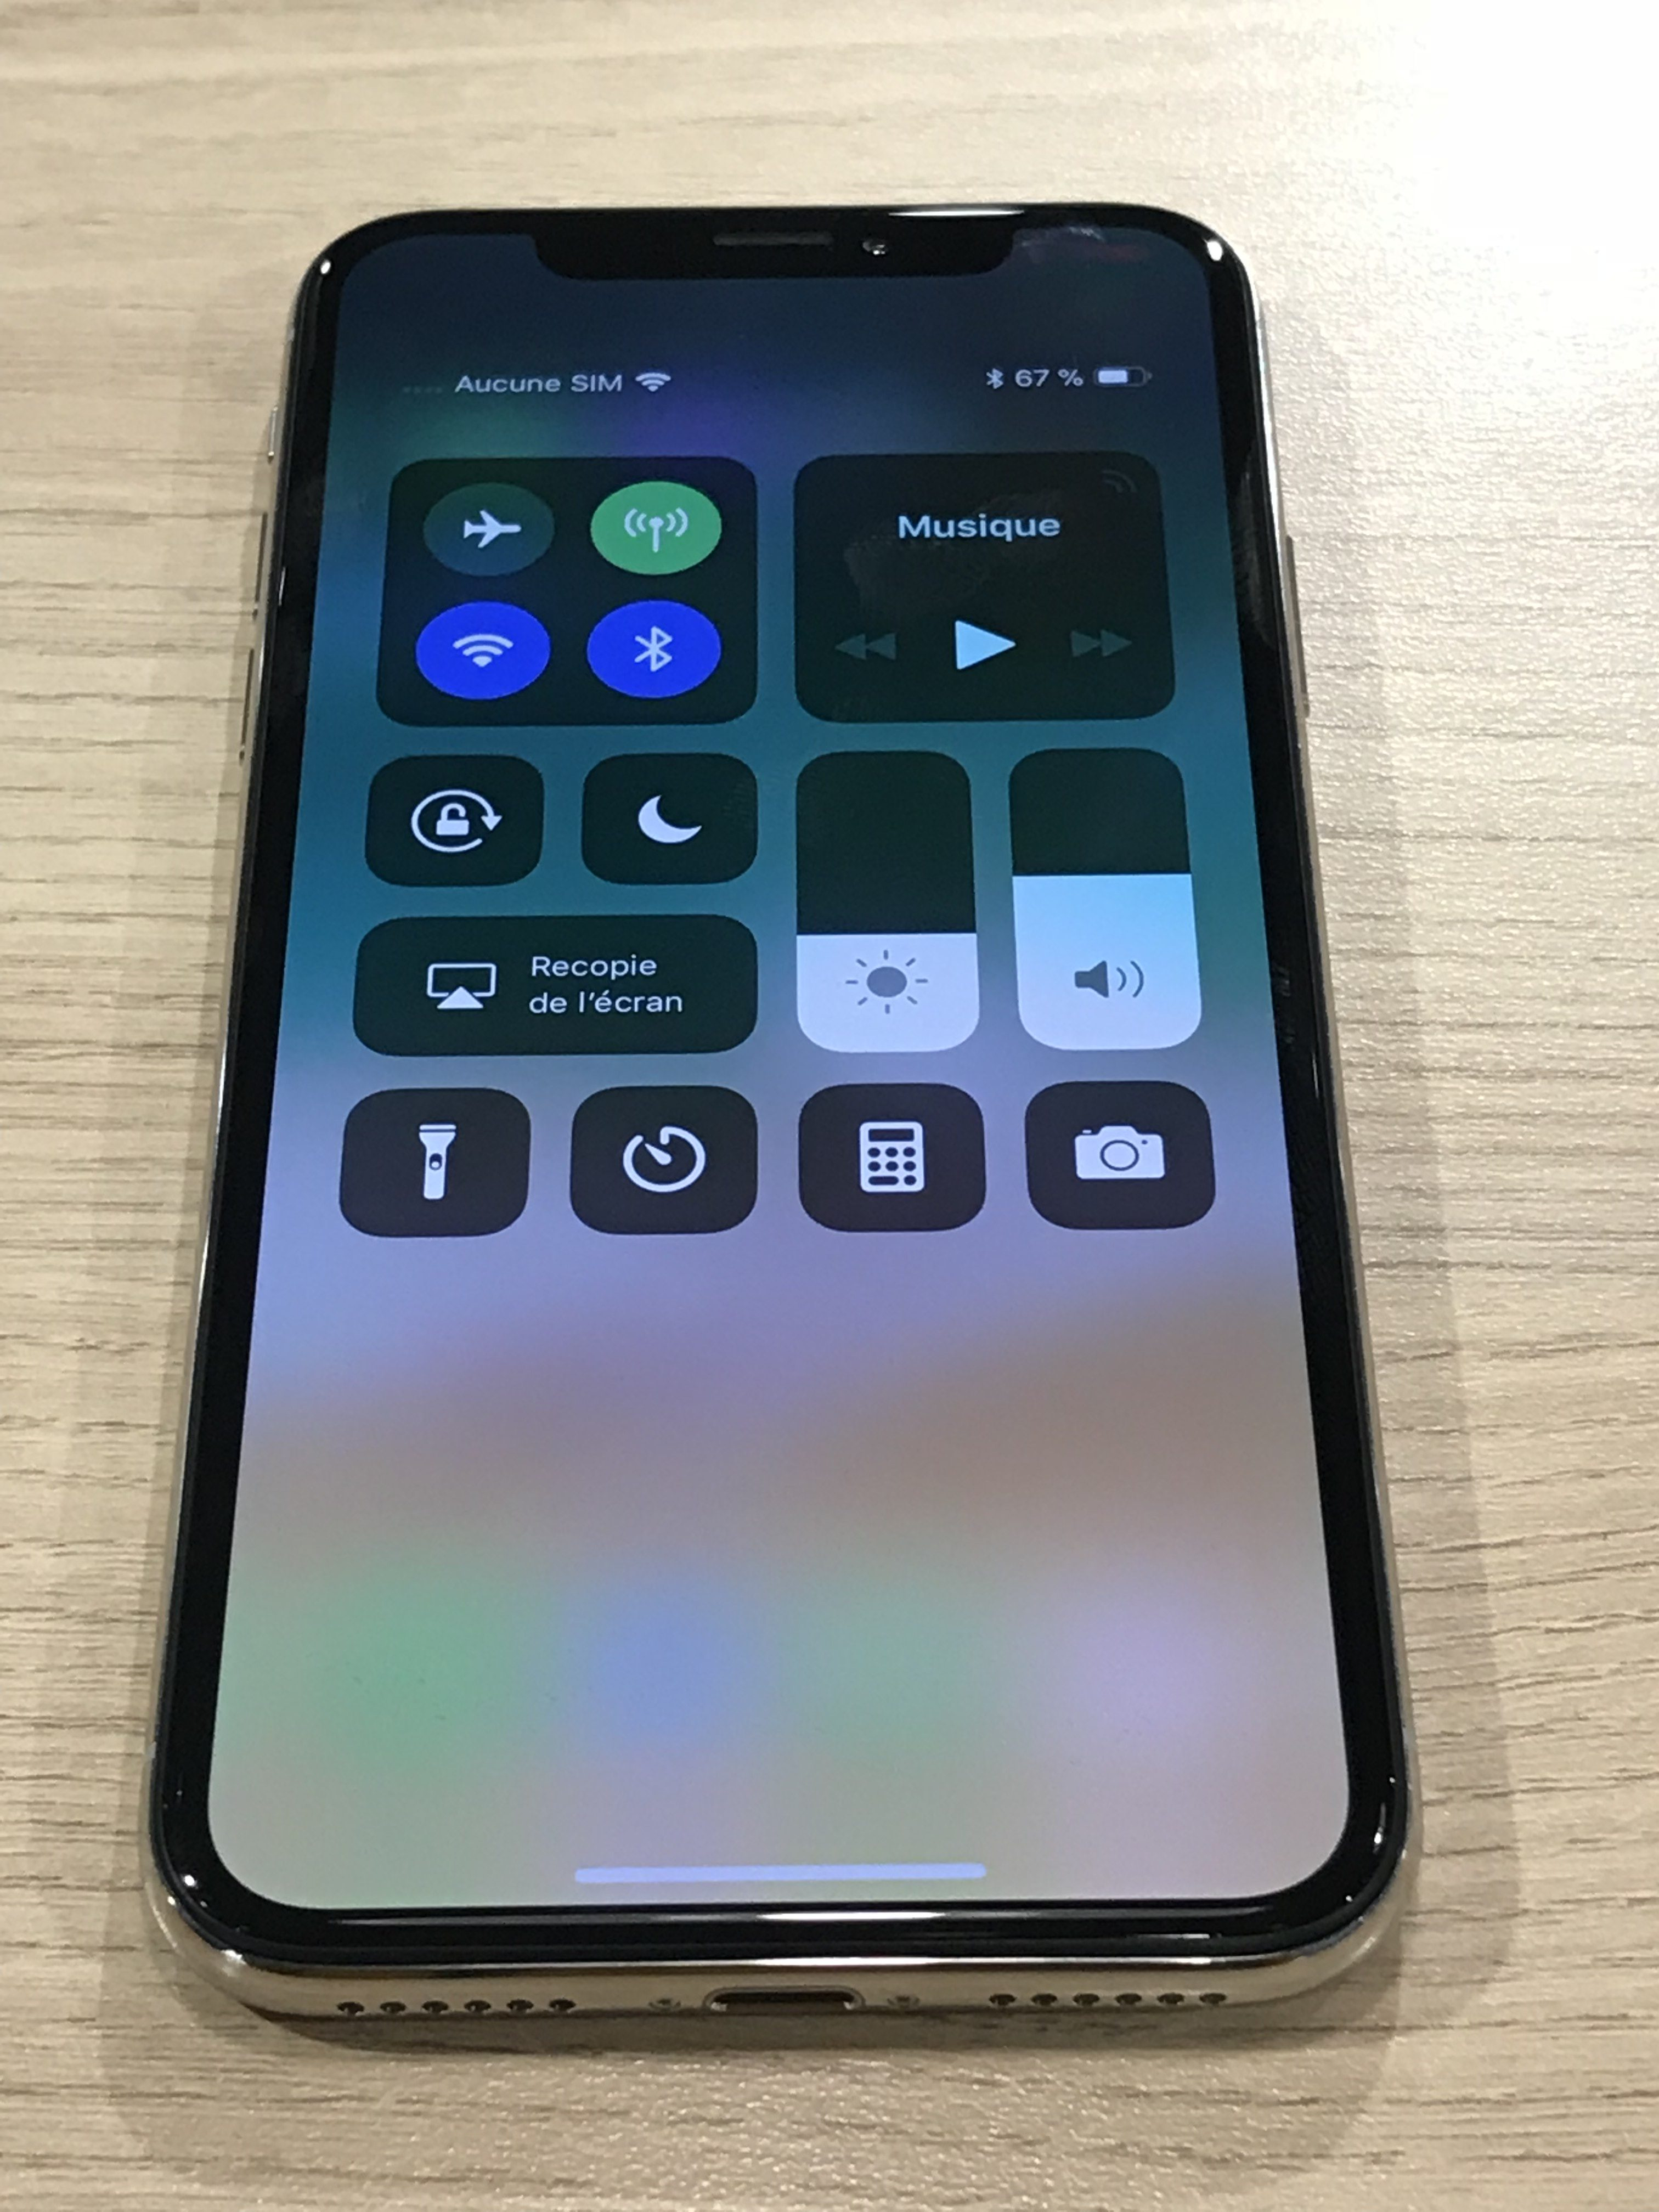 IMG 1115 e1509706354645 - Prise en main de l'iPhone X chez Orange